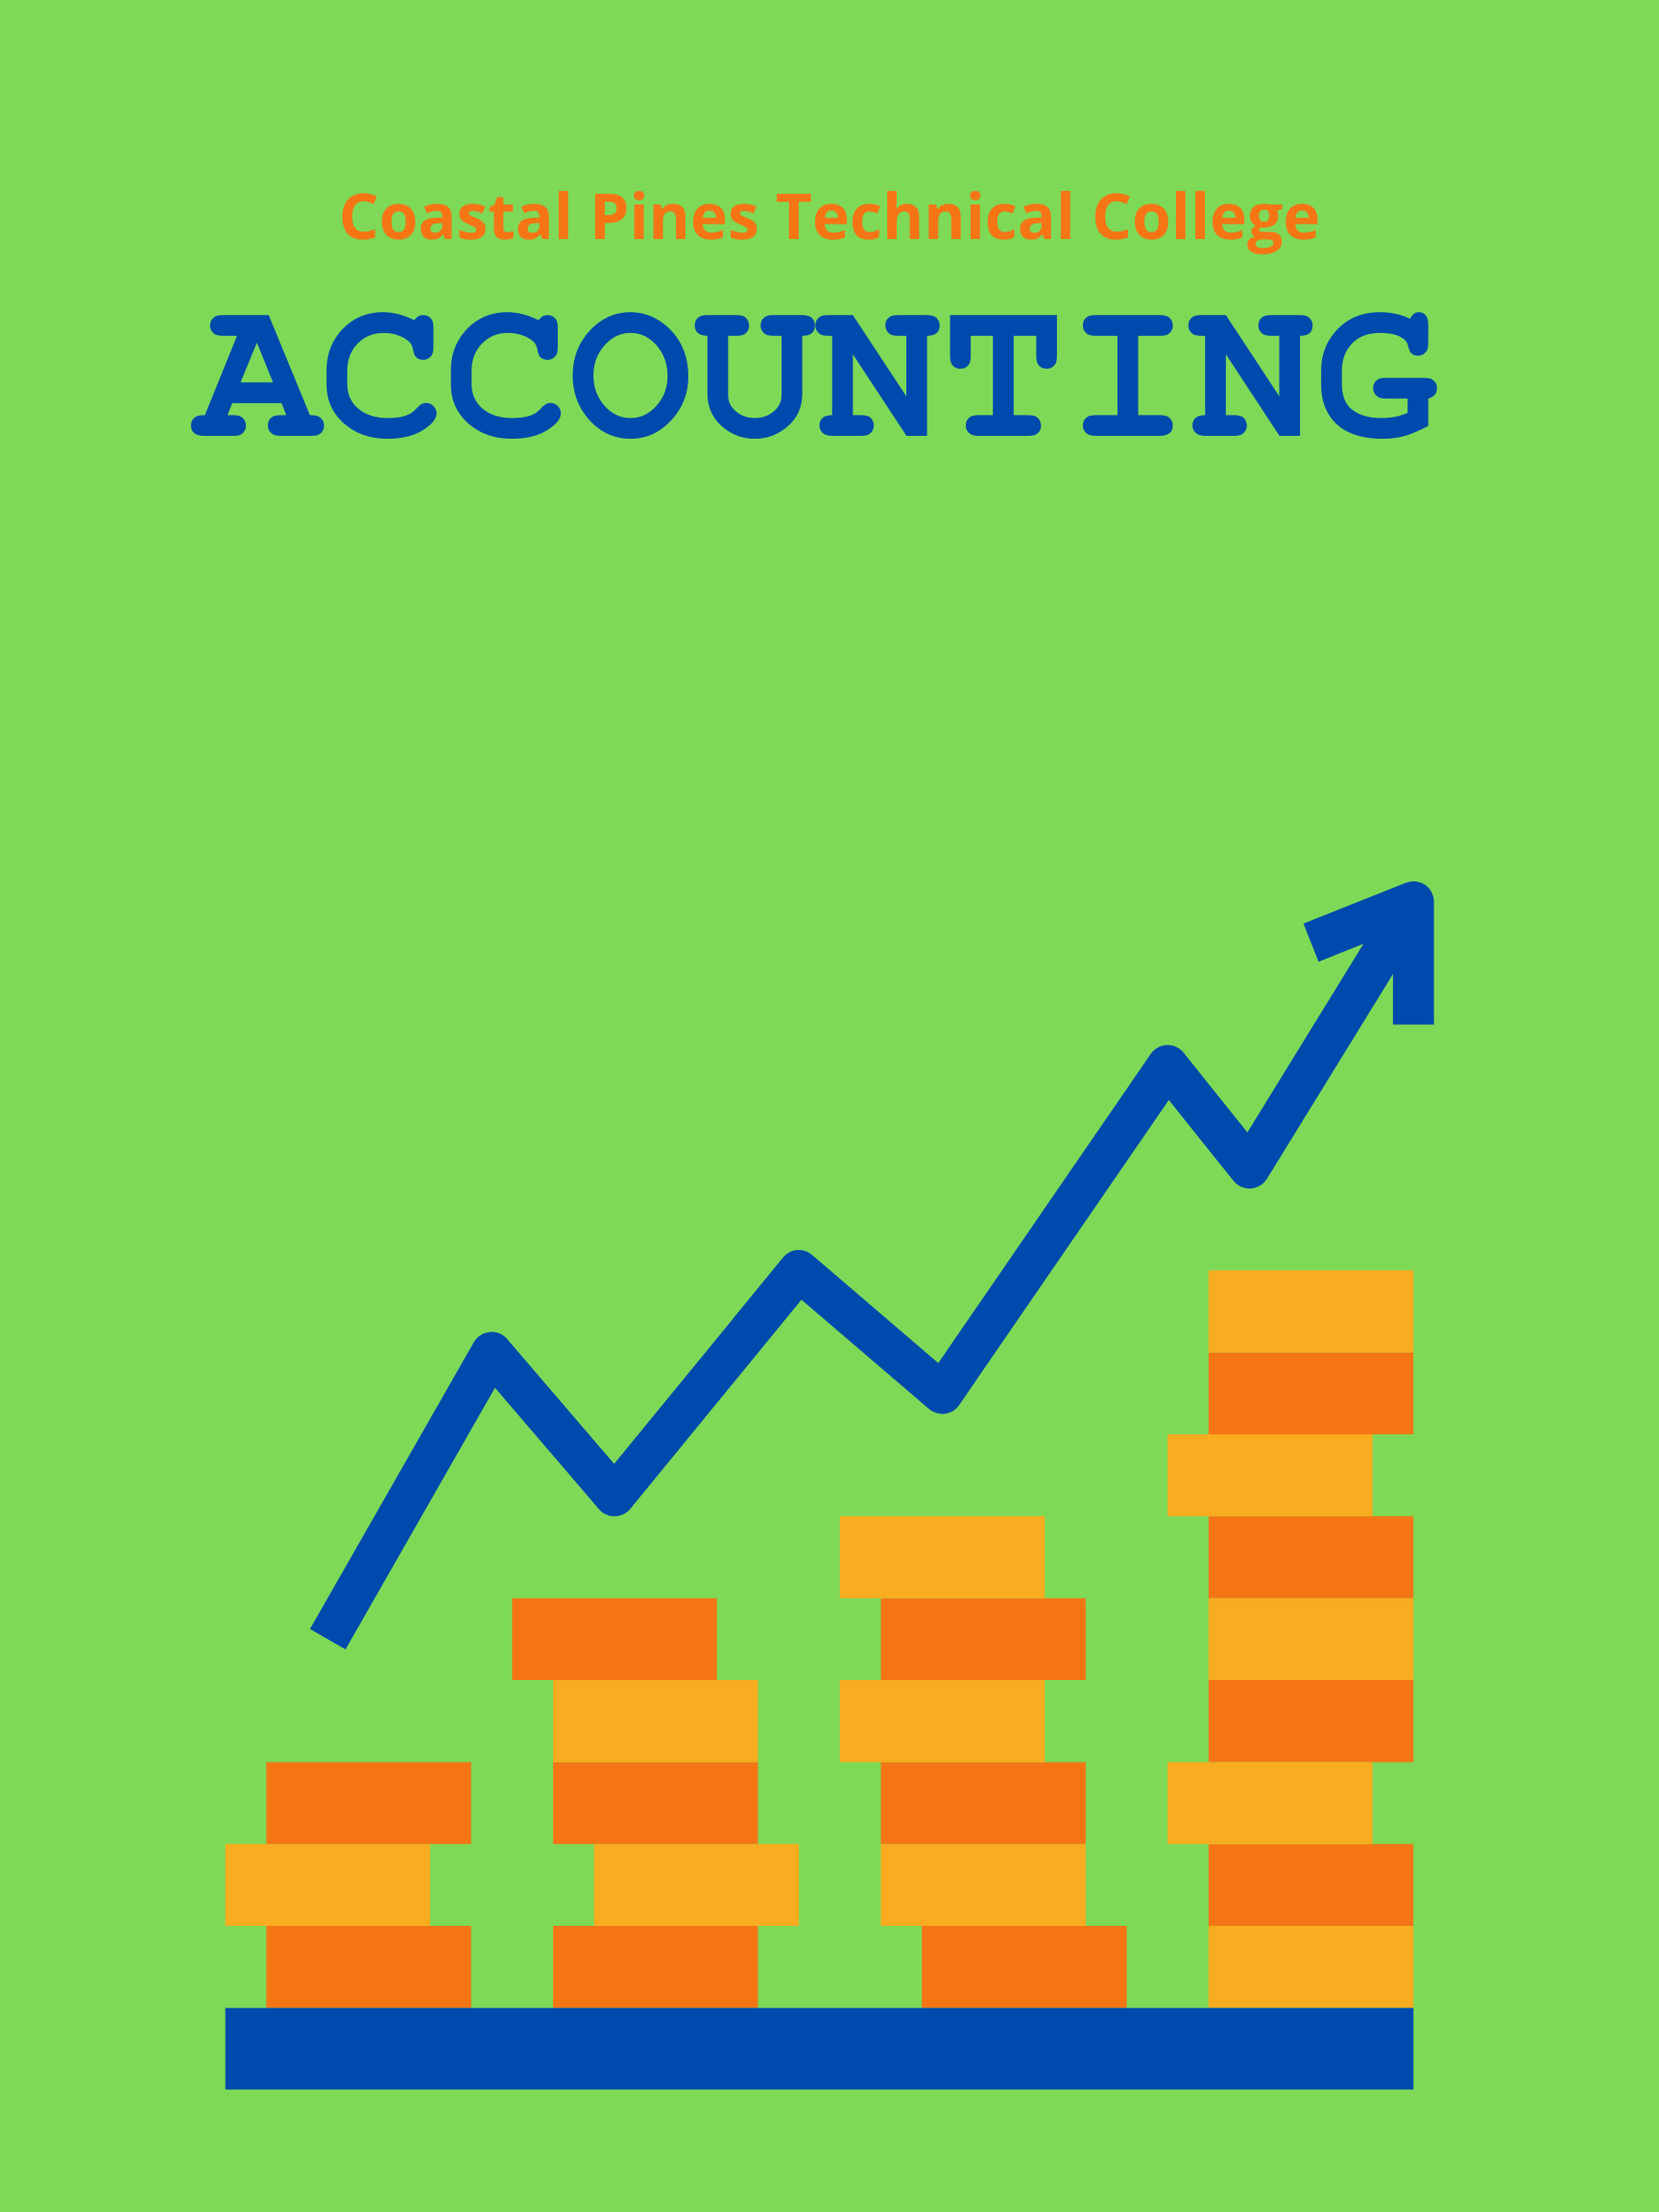 Coastal Pines Technical College Accounting